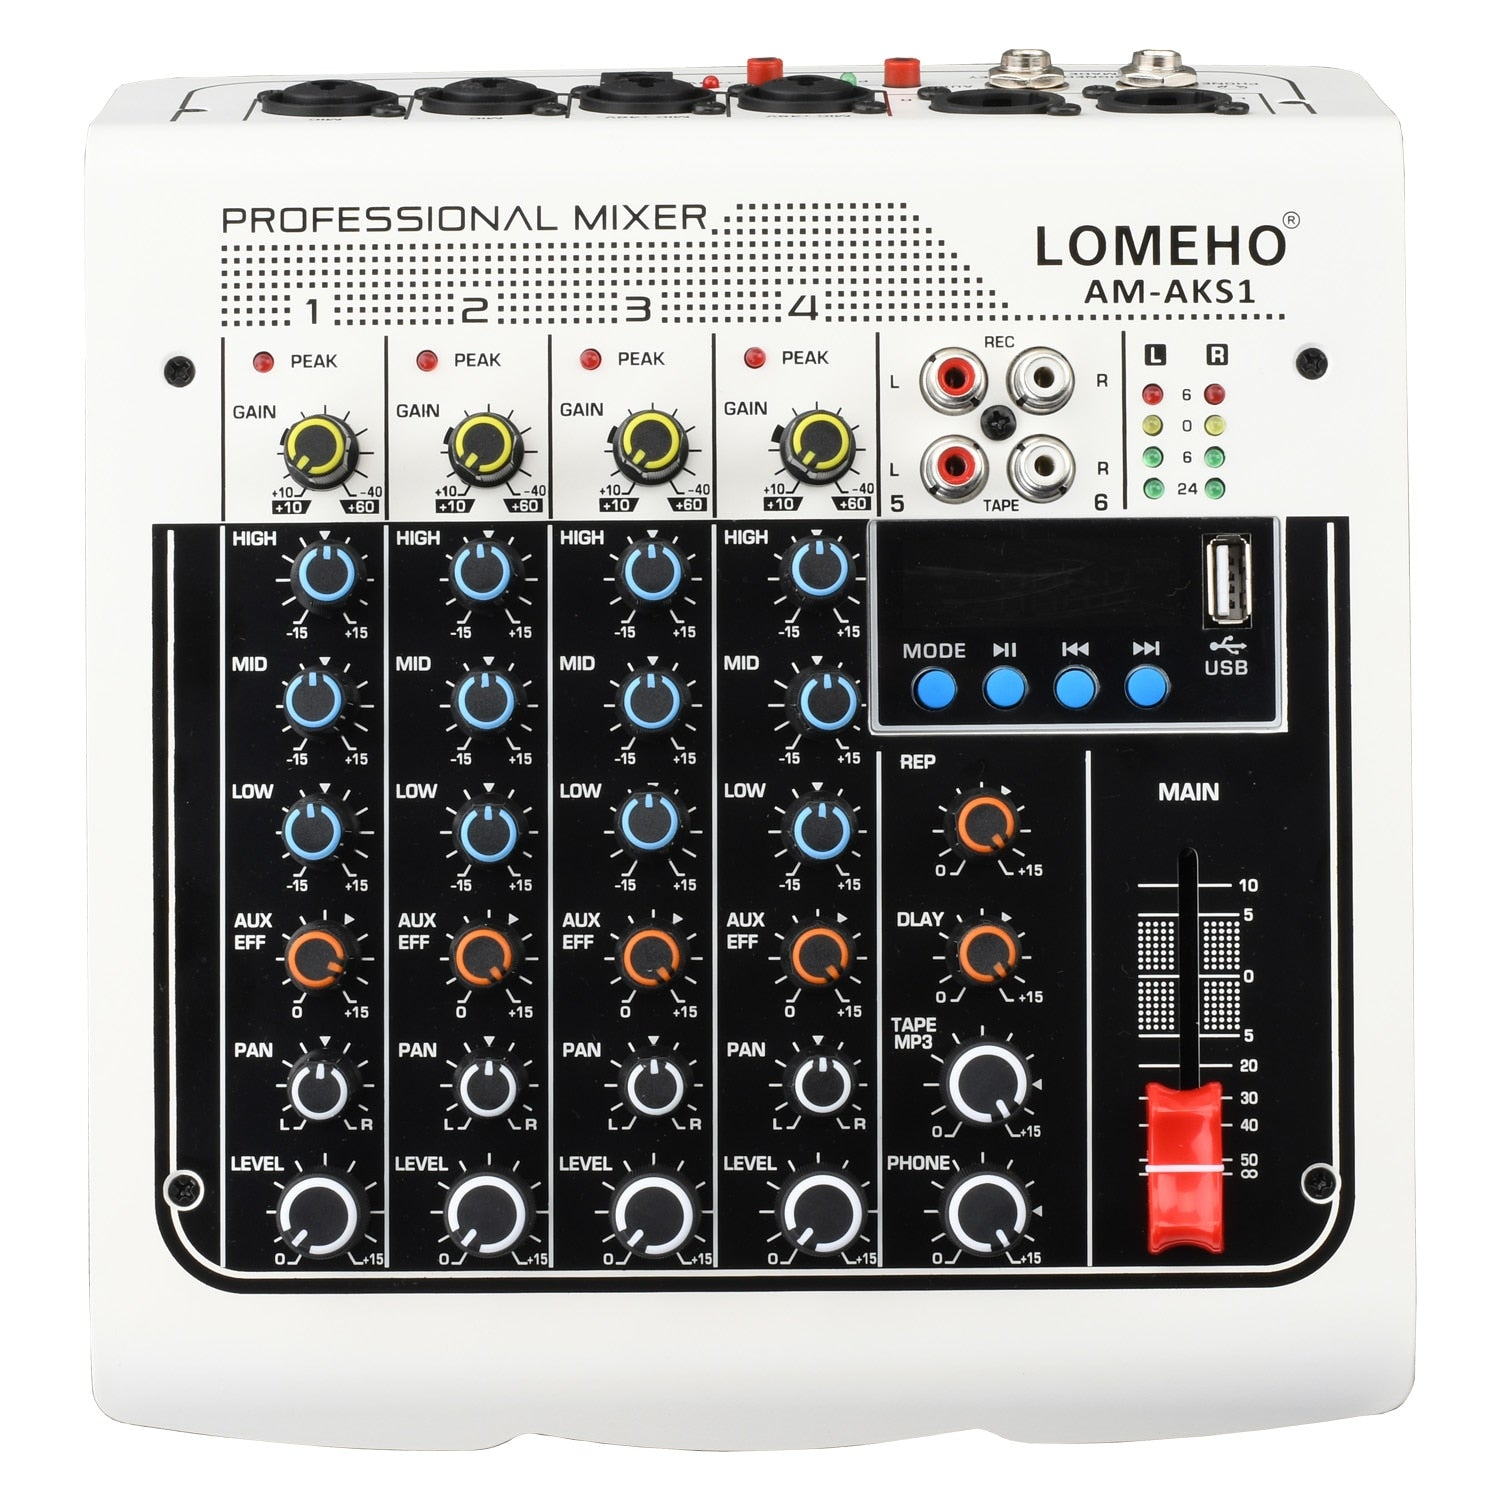 Lomeho AM-AKS1 - Mixer profissional, 4 mono, 1 estéreo, 6 canais, bluetooth, usb play record audio